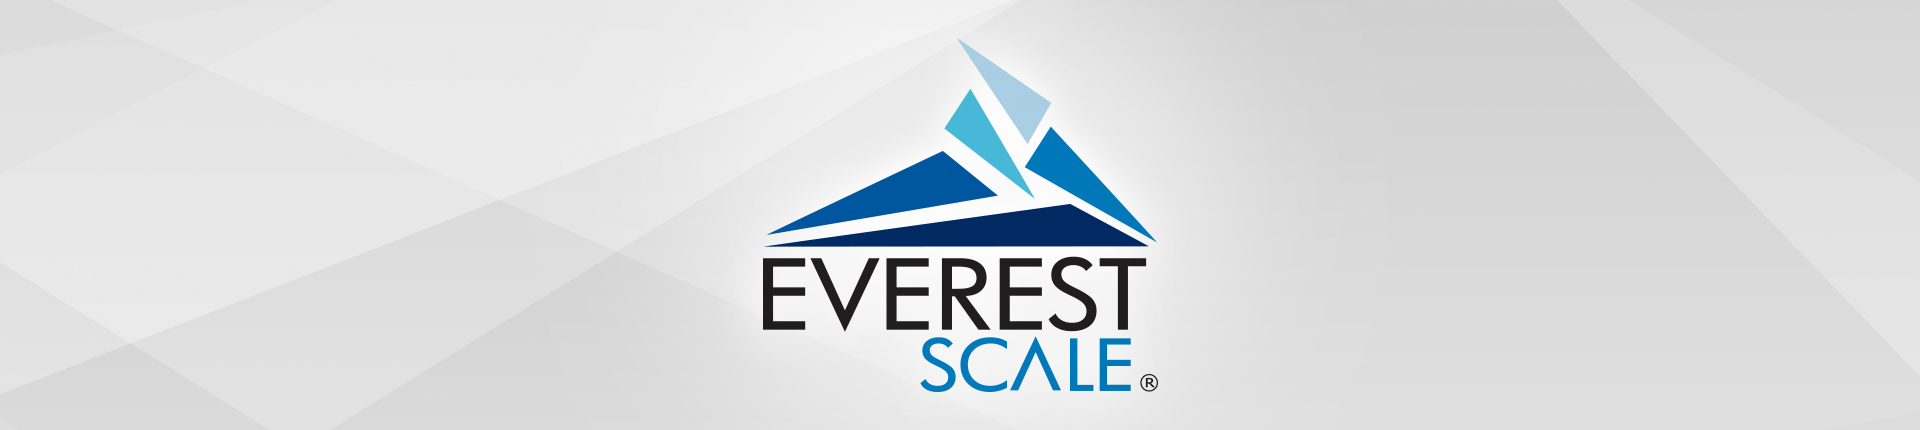 Everest Scale, Inc. is an accredited provider of Industrial, Food Retail, and Laboratory weighing solutions in the Upstate of South Carolina.